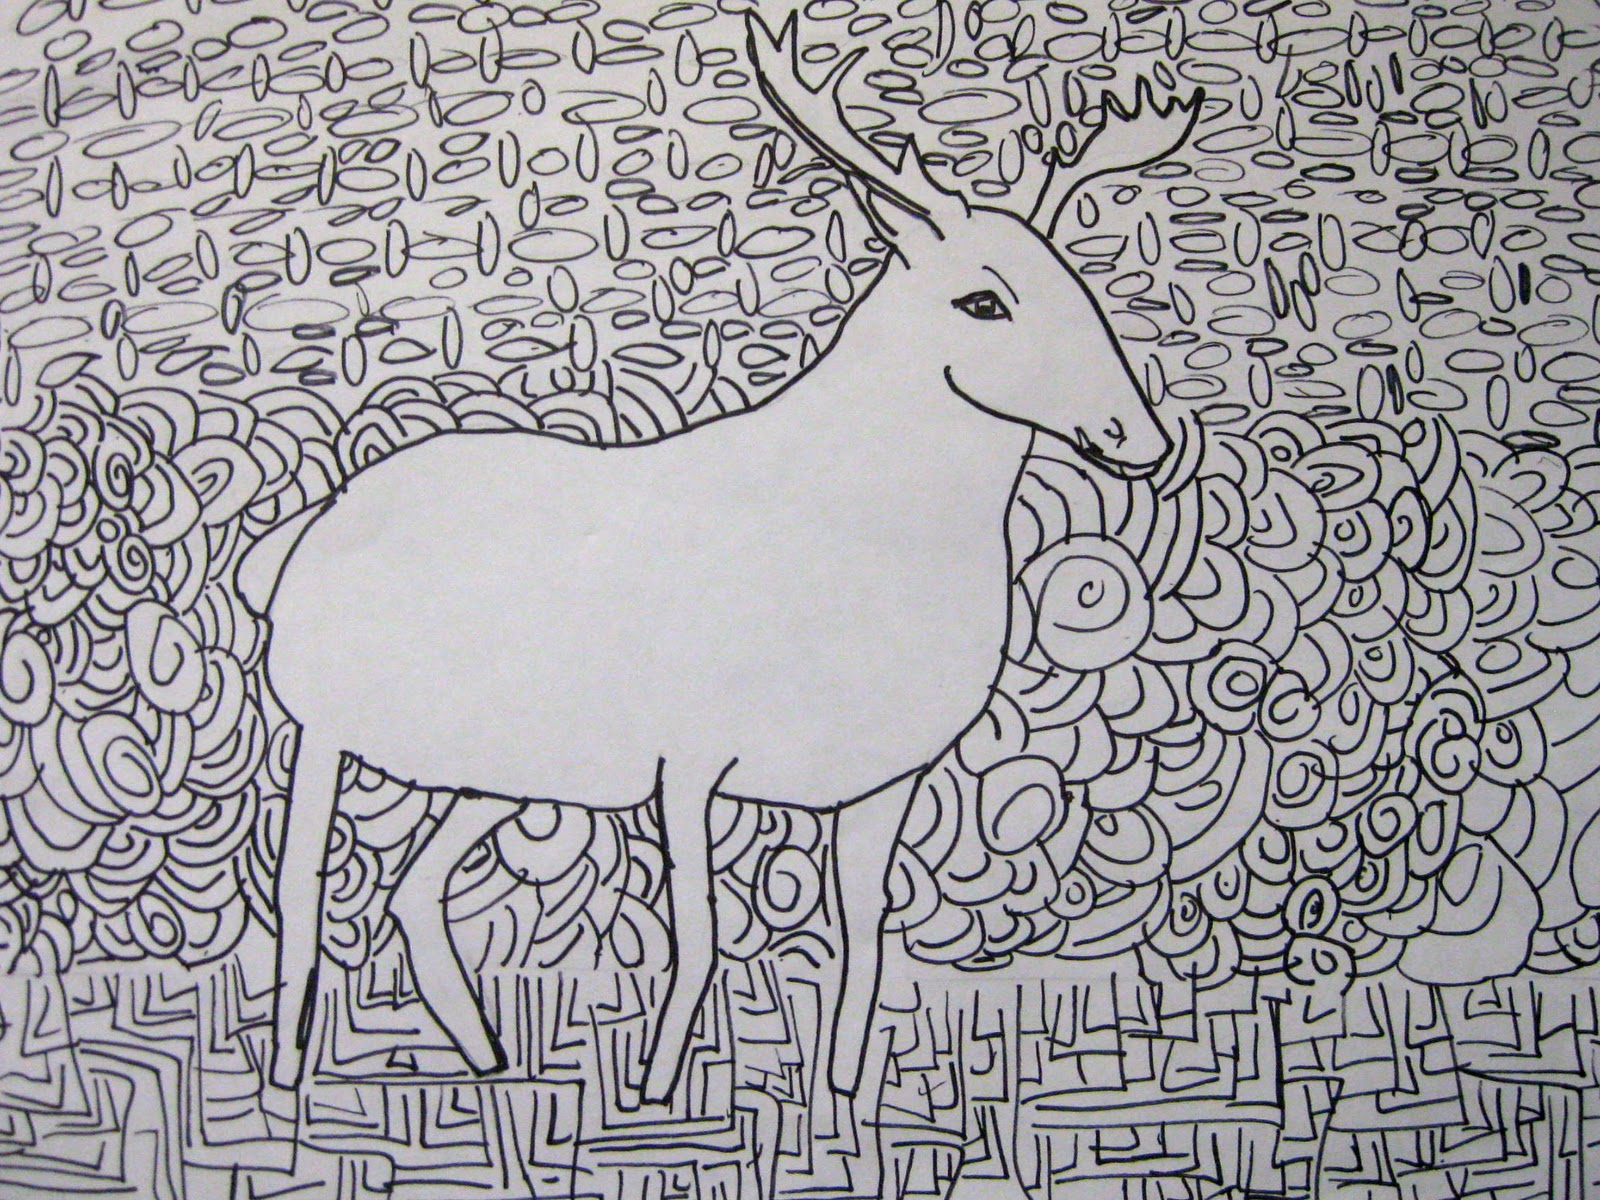 Contour Line Drawing Animal : Organized chaos th grade contour line drawing of animals